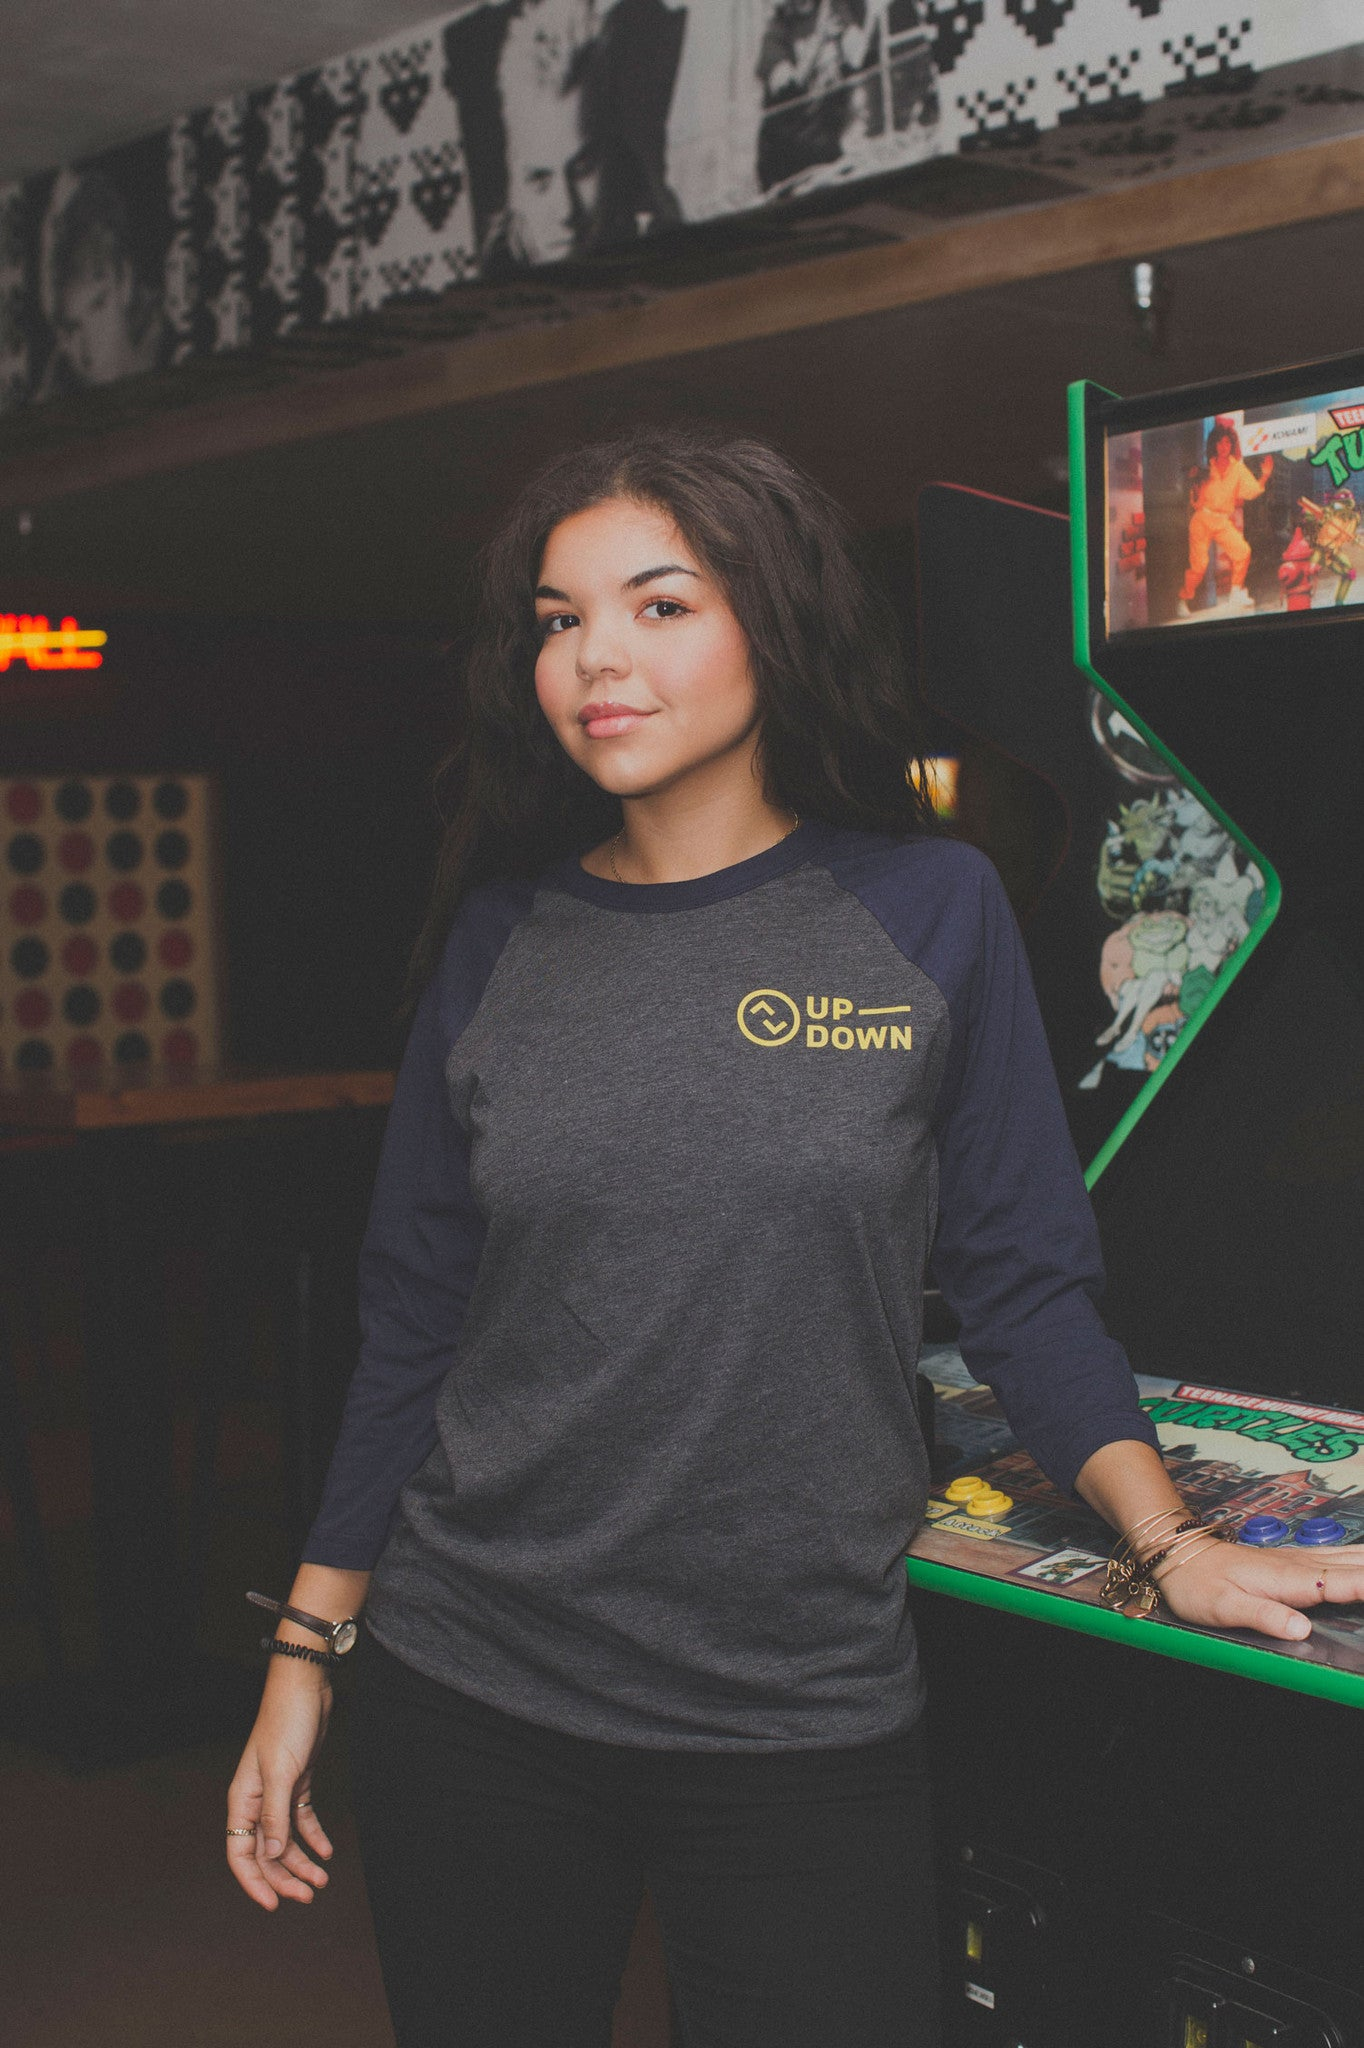 updown arcade bar baseball tee in navy/grey/yellow